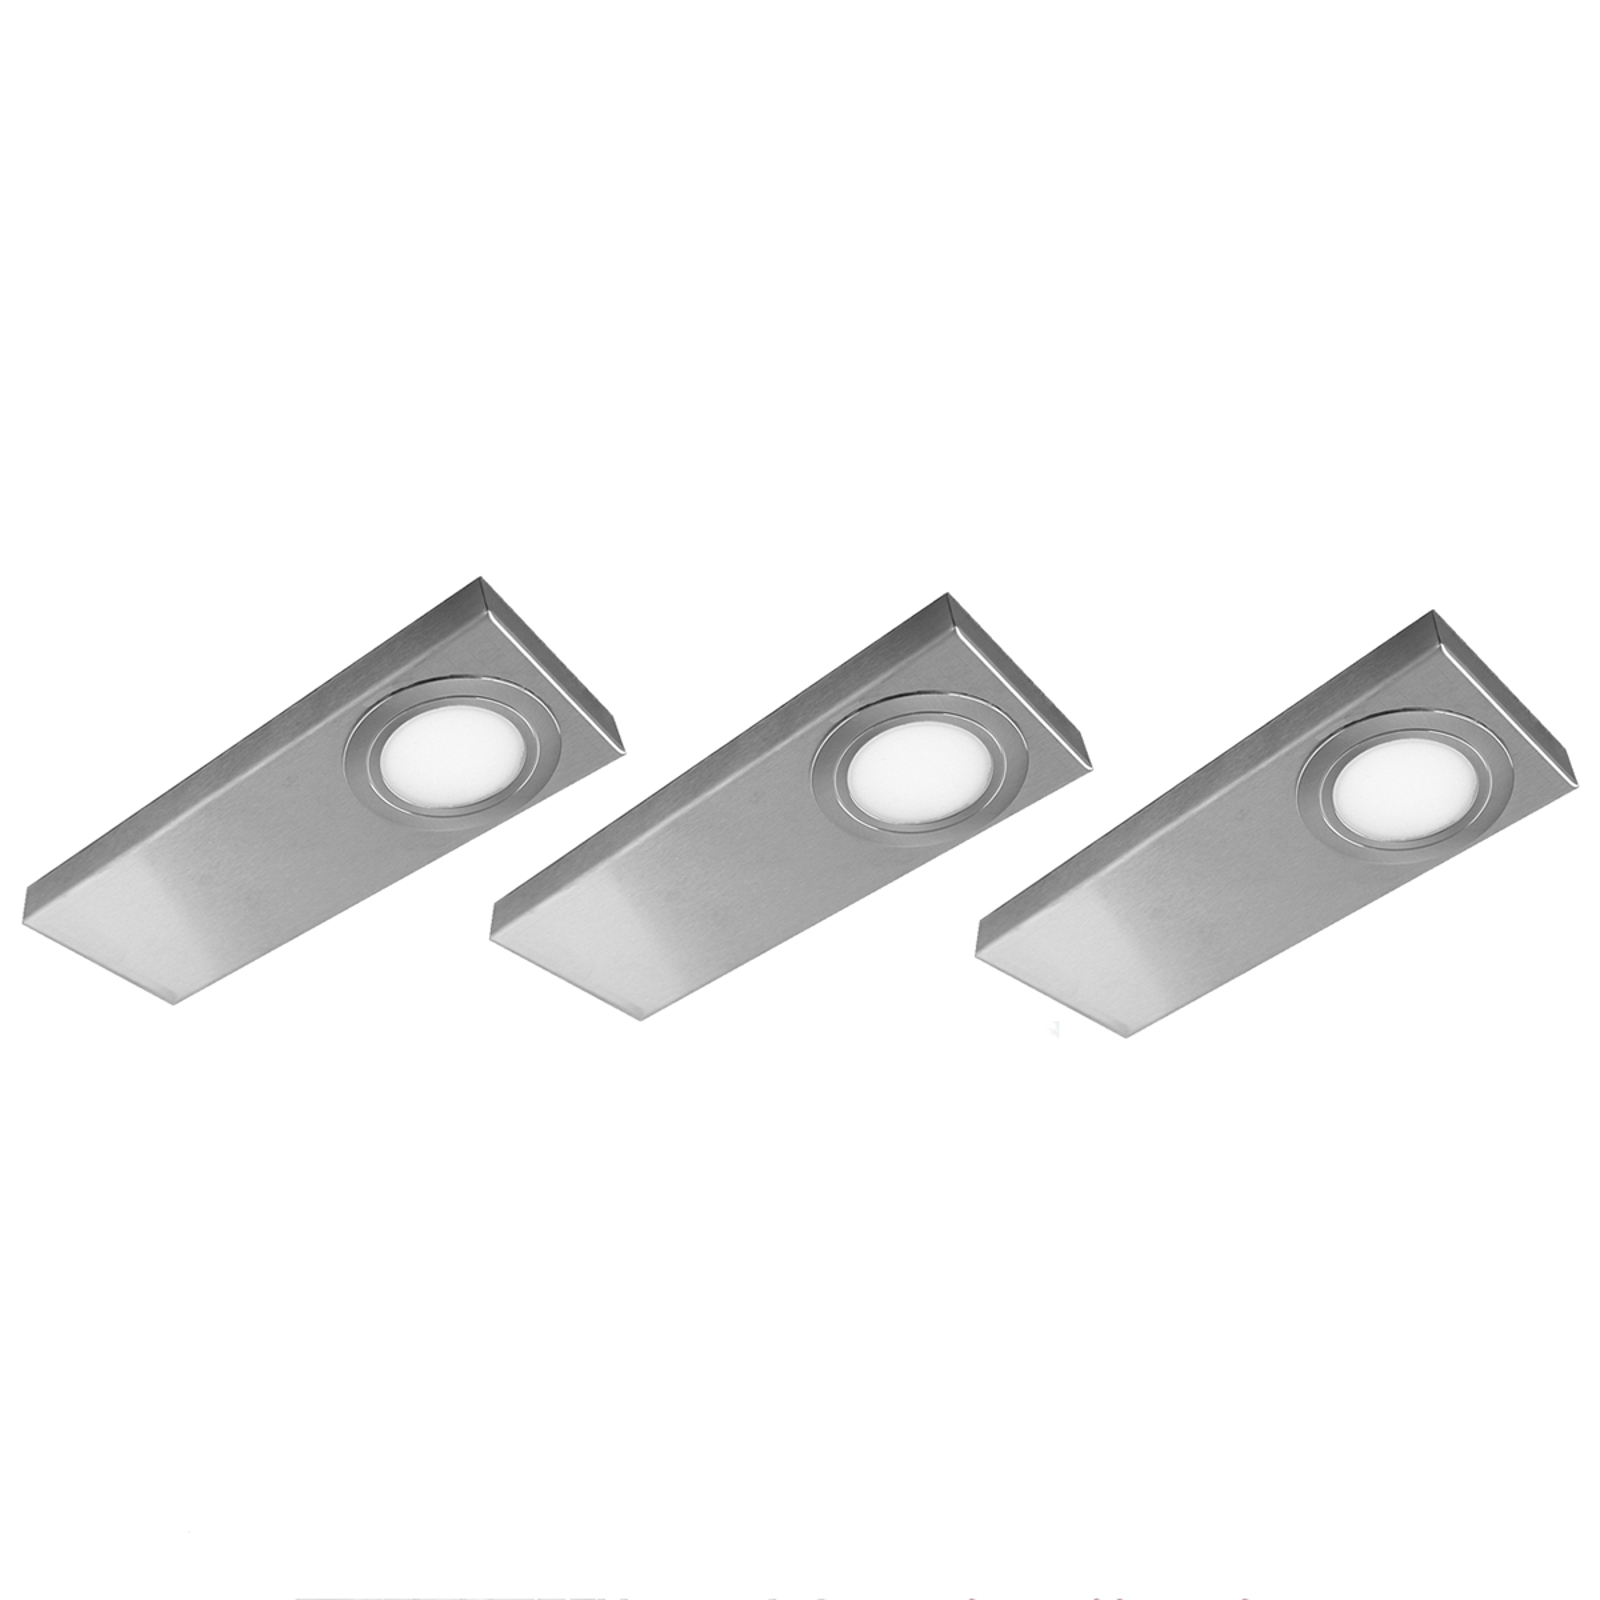 Flat LED under-cabinet light Tain-CF in a set of 3_3025269_1